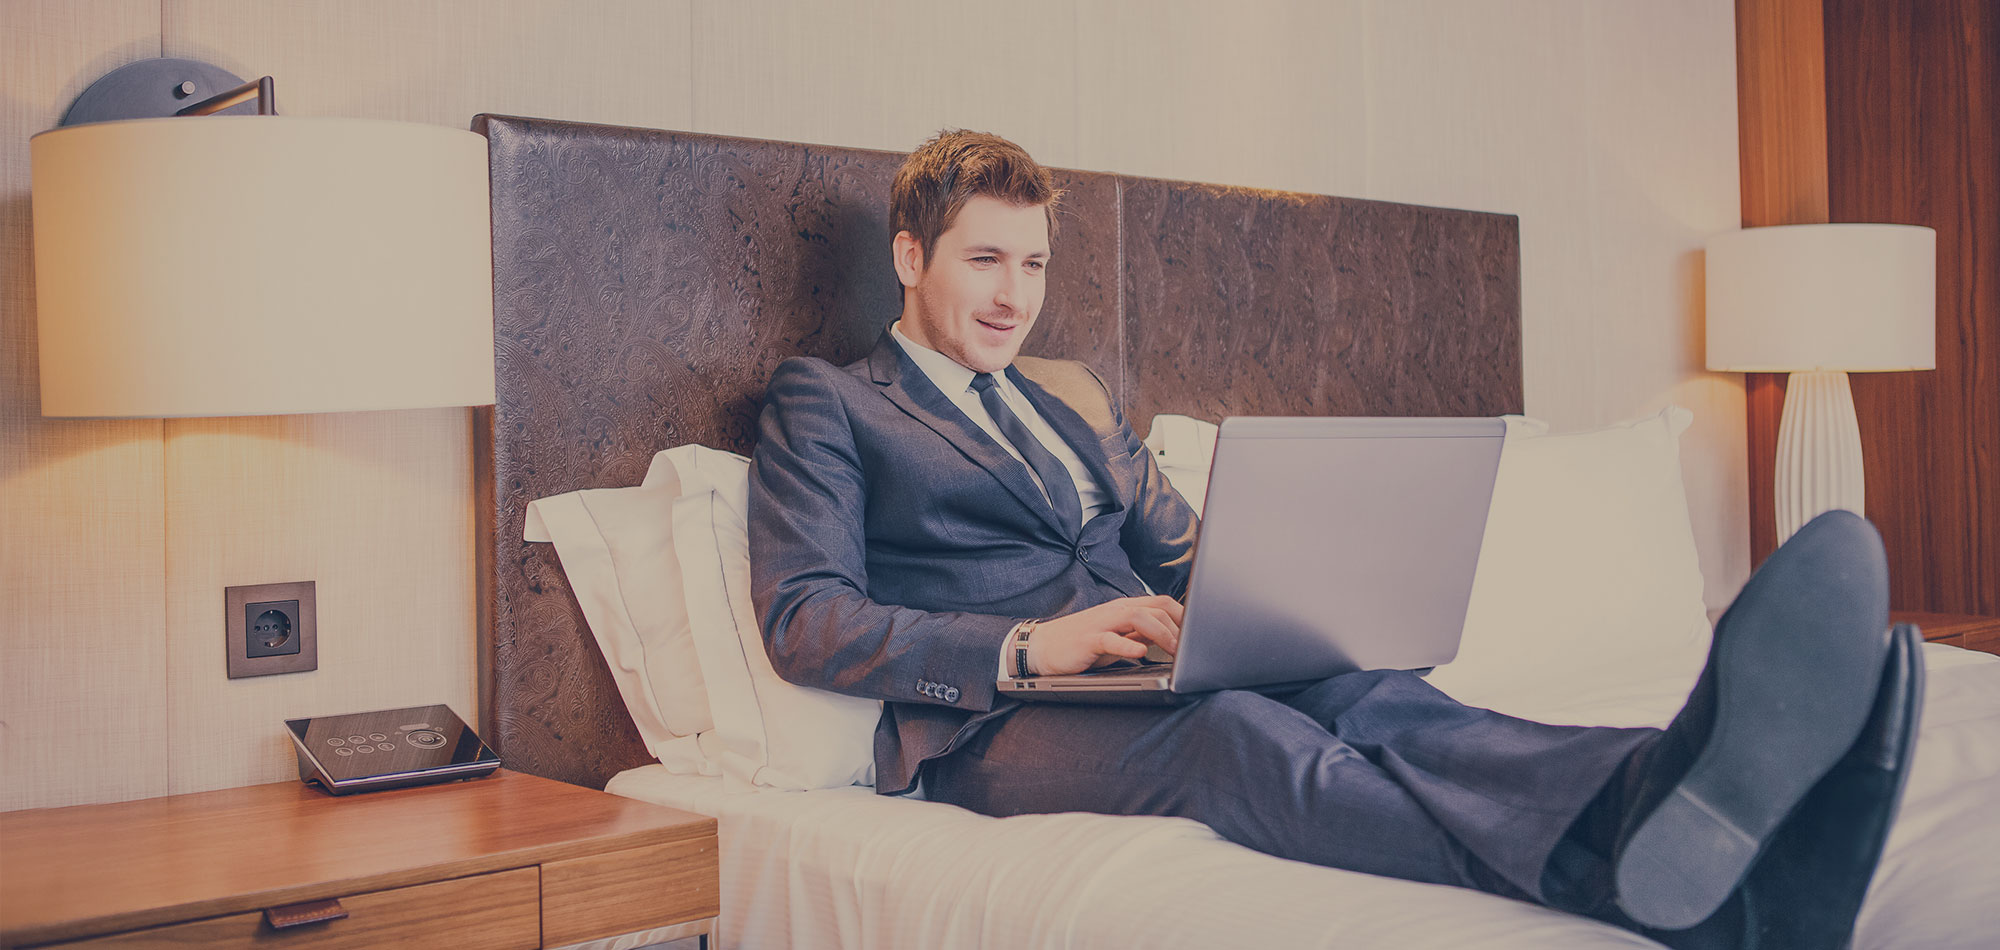 HospitalityWLAN Design: What Guests Want and Expect During Their Stay [Infographic]